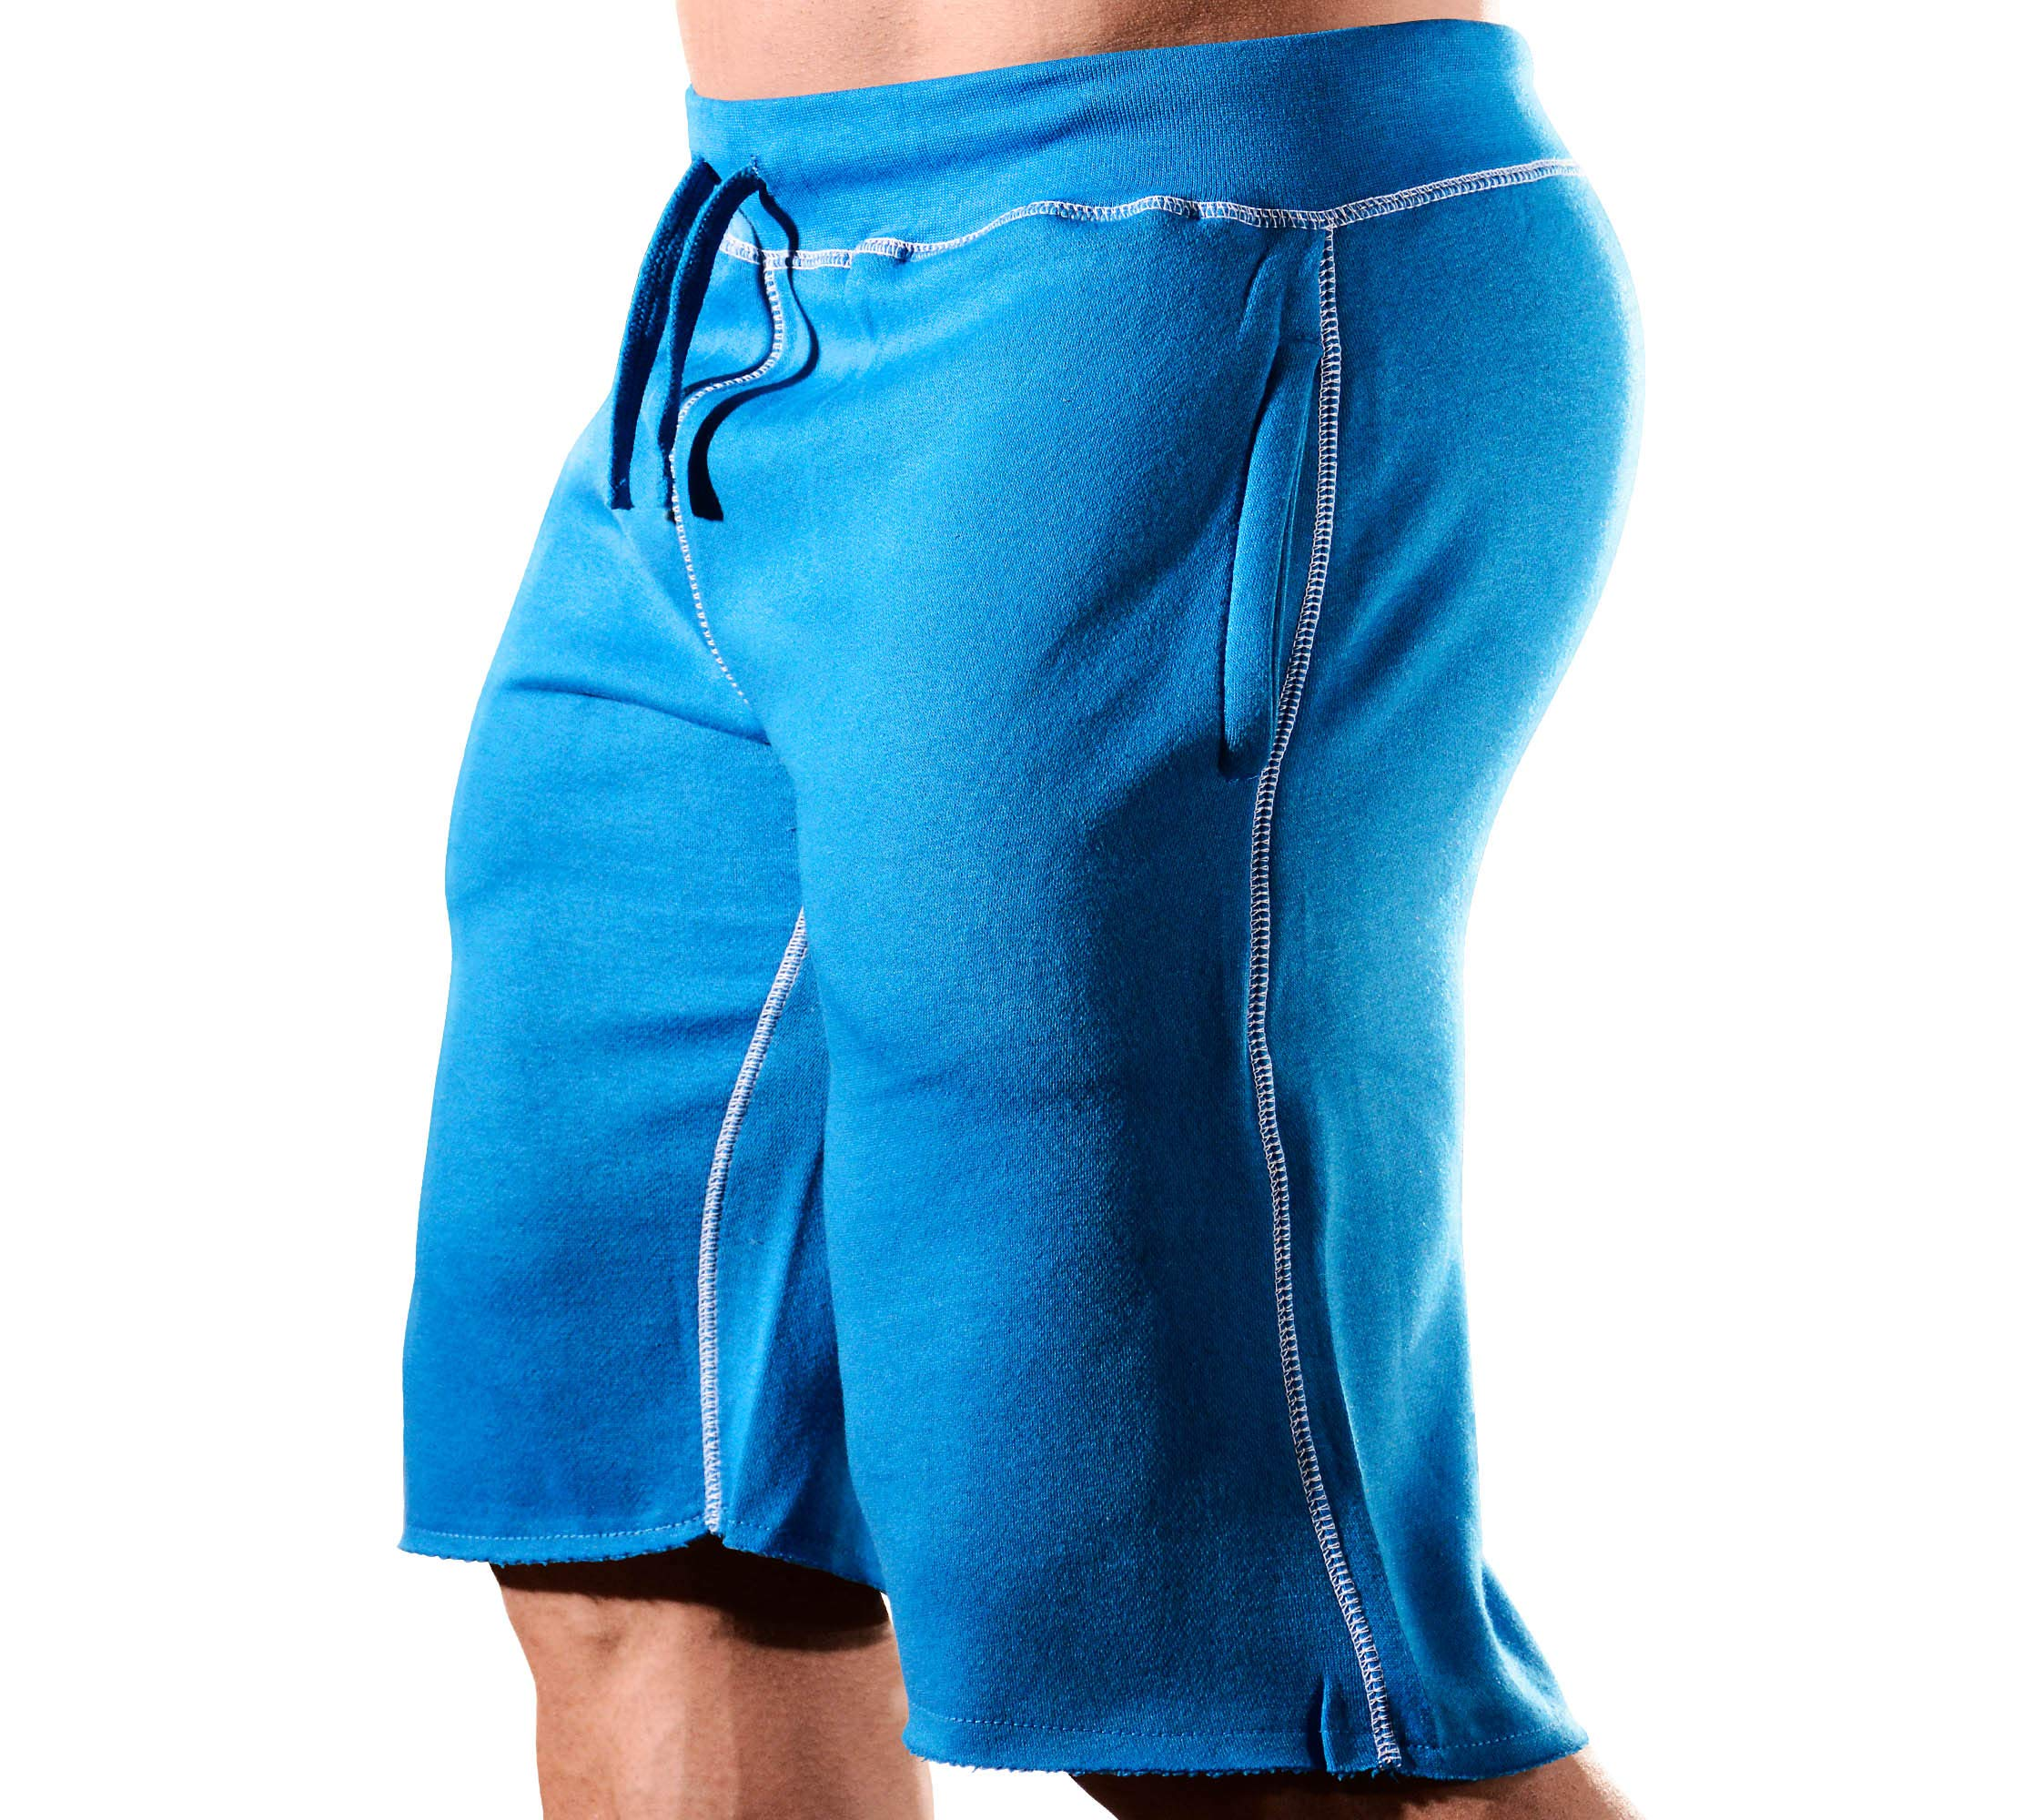 HRD LVN Mens Workout Shorts Classic (Small, Blue Sweat Shorts) by Monsta Clothing Co.